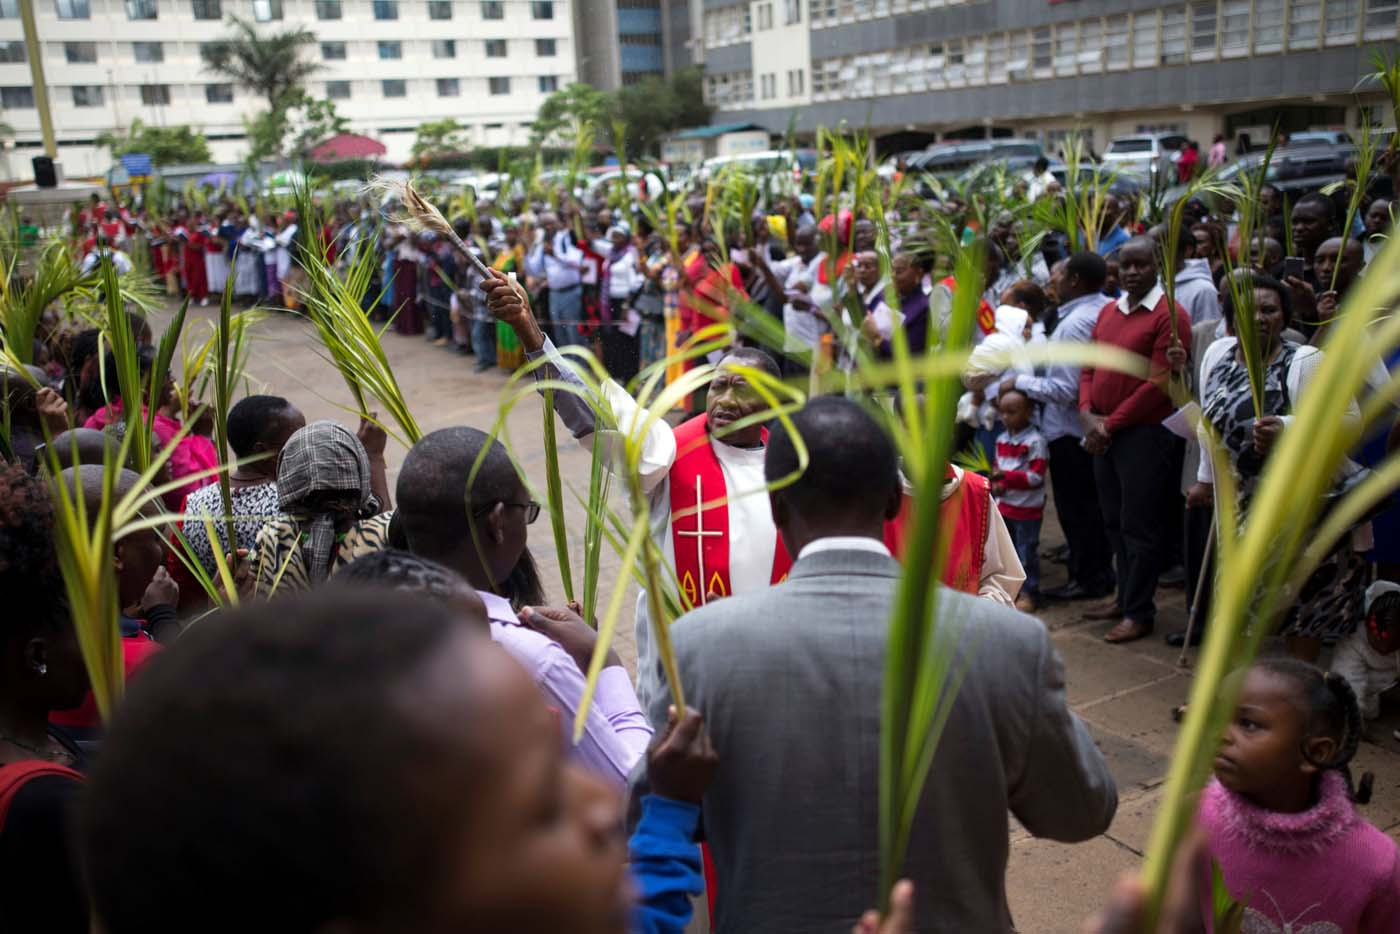 A member of the Catholic Christian clergy blesses worshippers with holy water during a Palm Sunday ceremony in Nairobi, Kenya April 9, 2017. REUTERS/Baz Ratner.